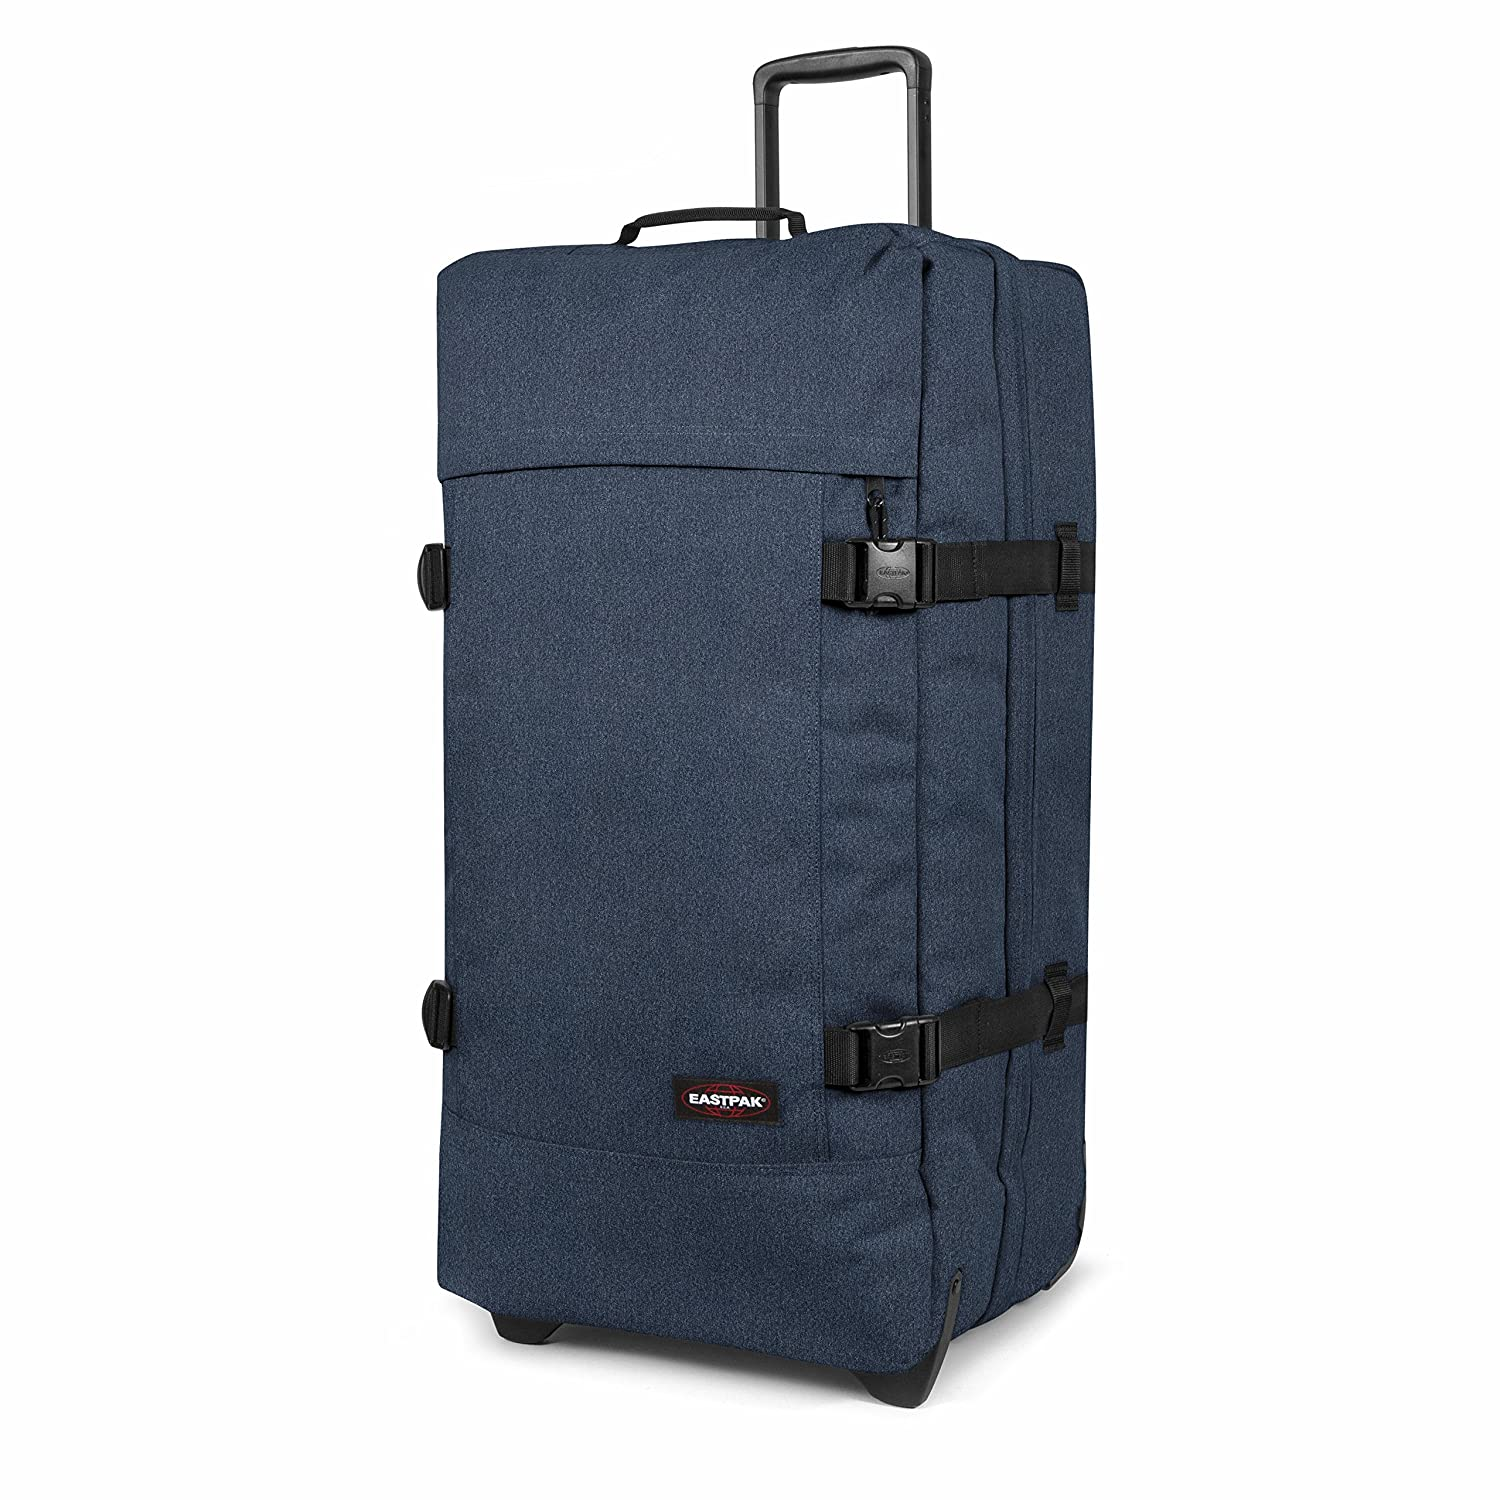 Eastpak Tranverz L Valise Bleu Cloud Navy 121 L 79 cm